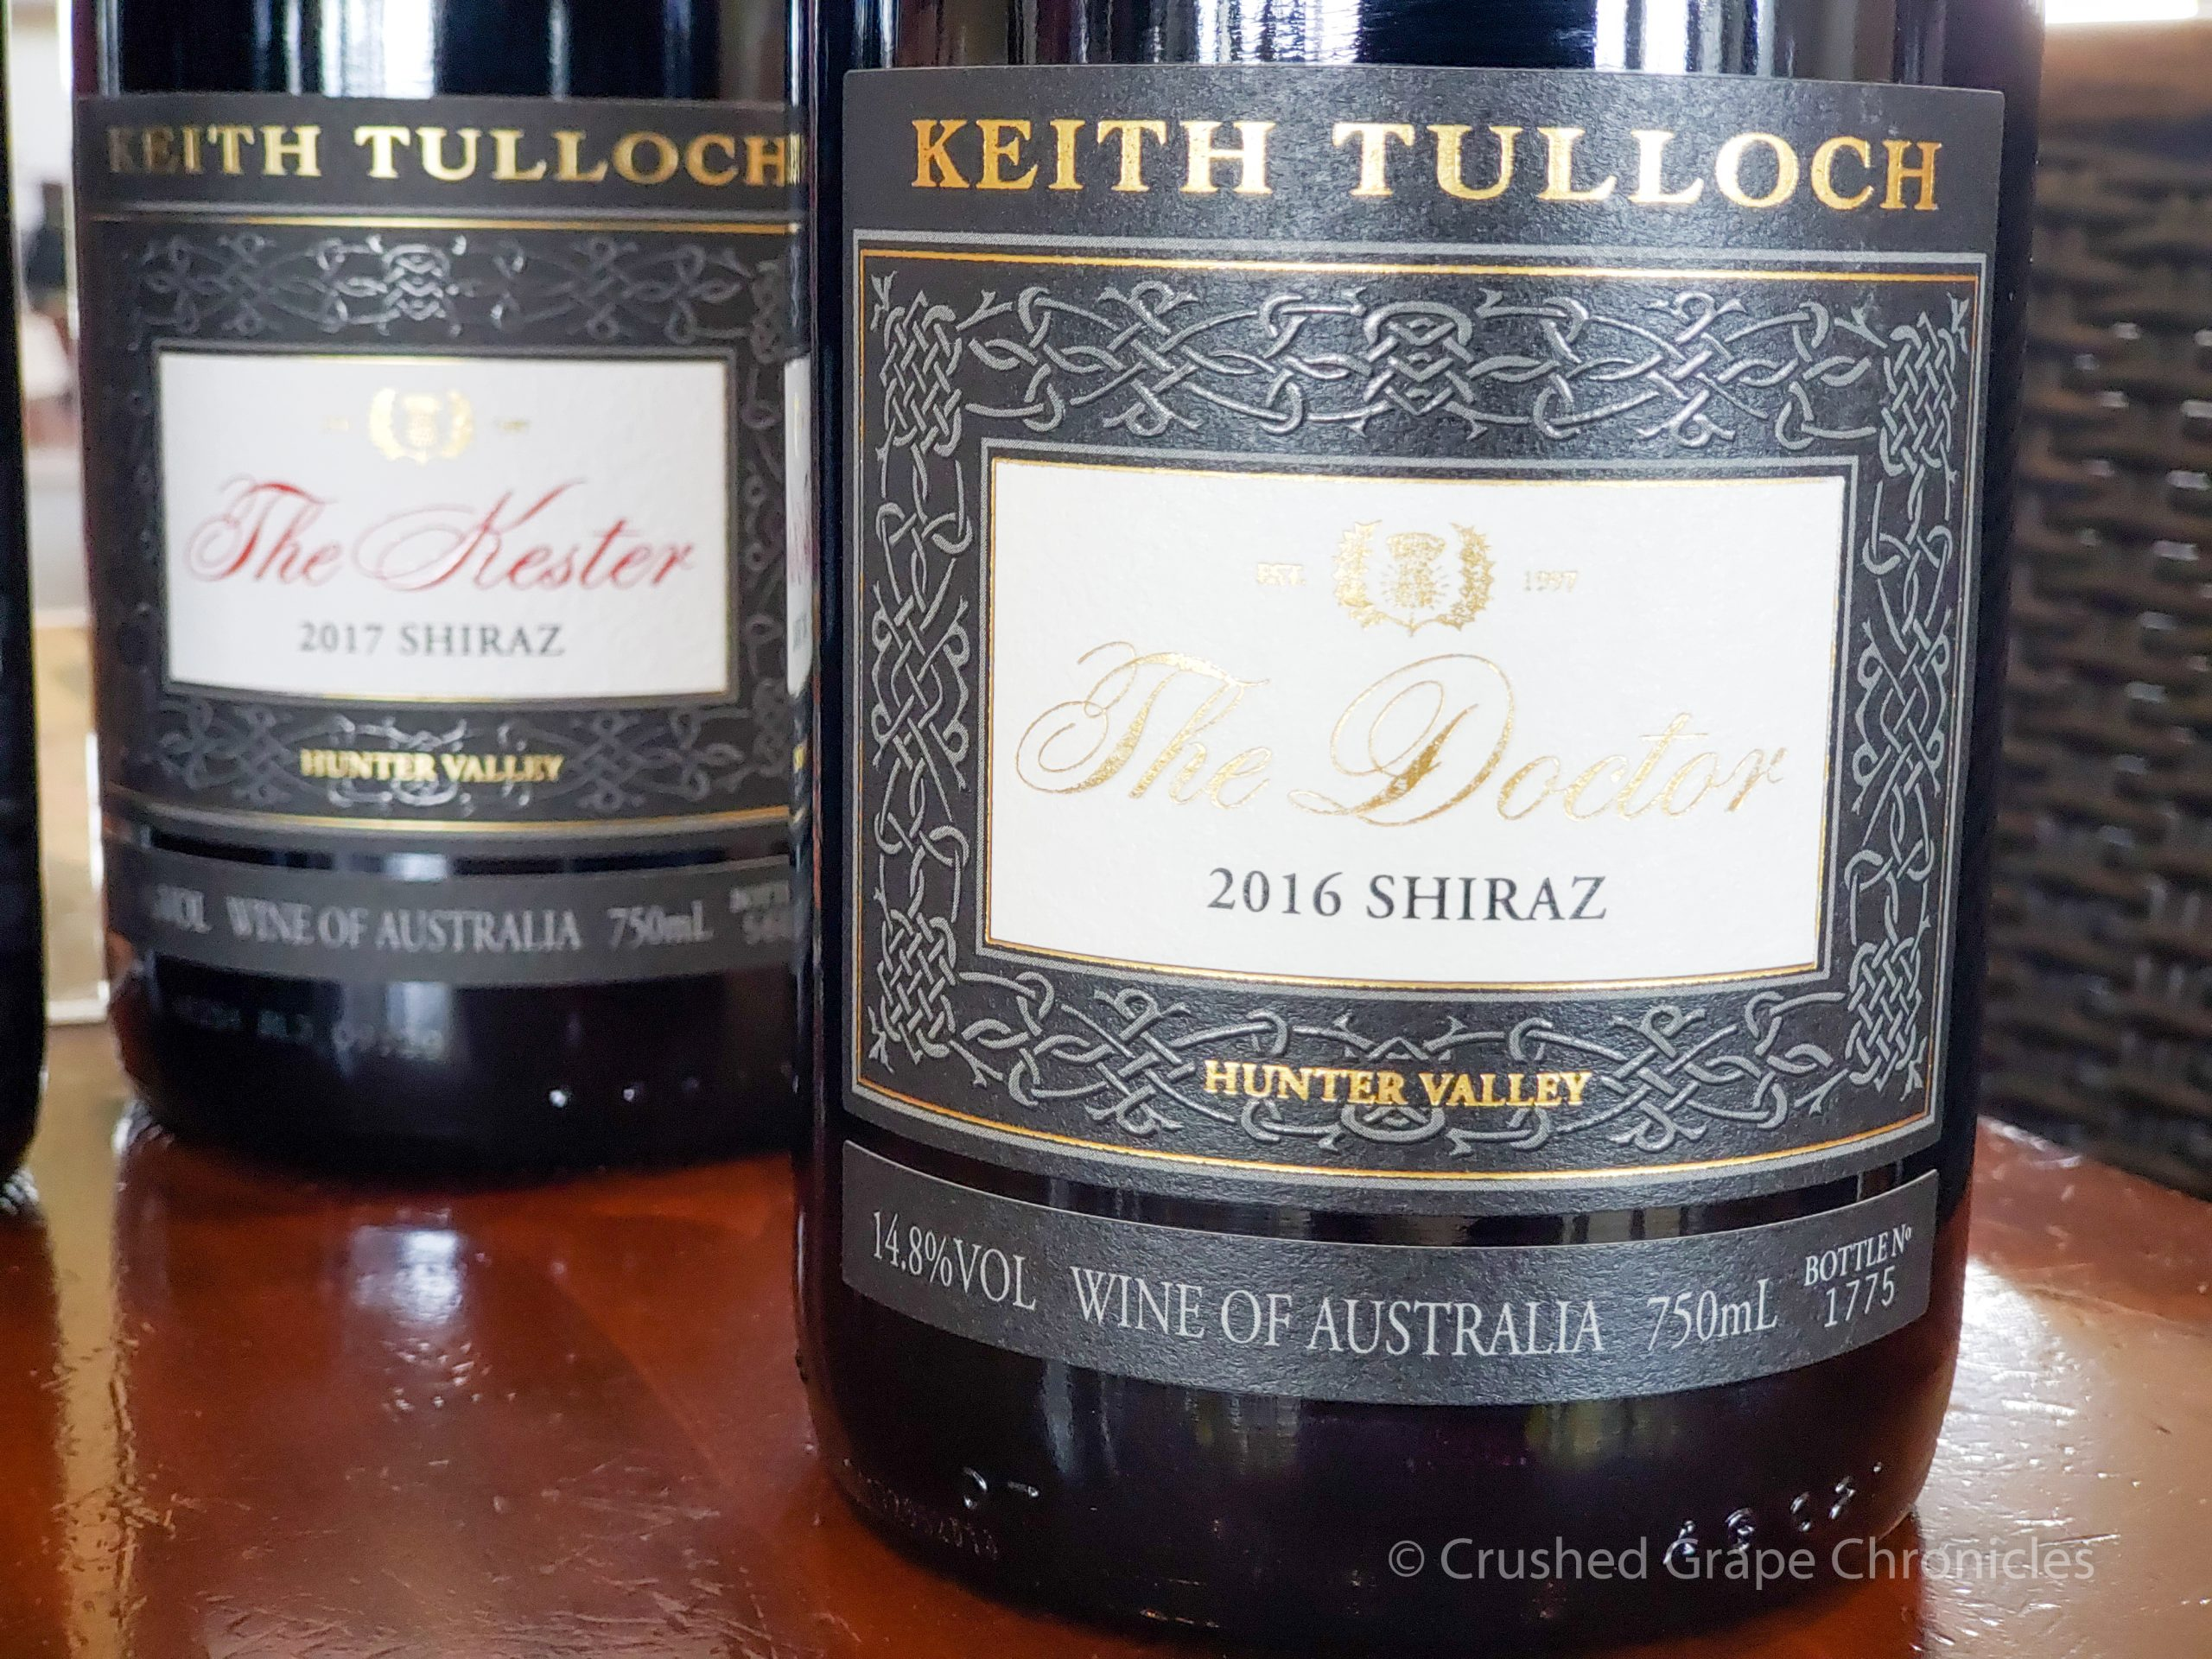 Keith Tulloch Wines in Hunter Valley NSW Australia, a carbon neutral winery, 2016 shiraz